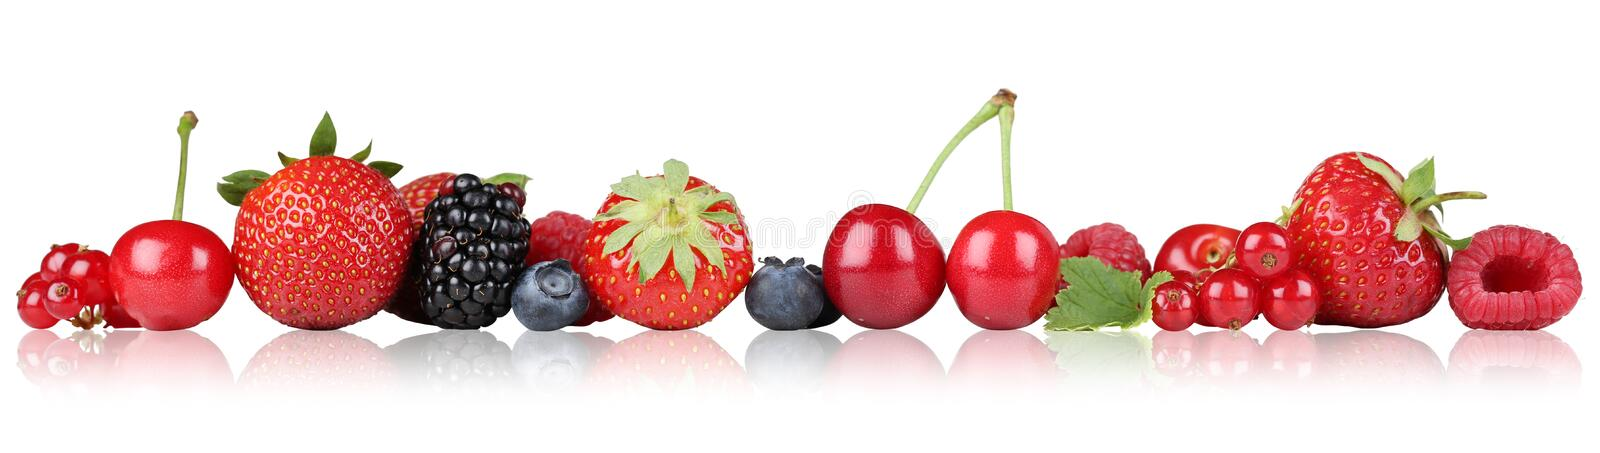 Berry fruits border strawberry raspberry, cherries in a row stock photo